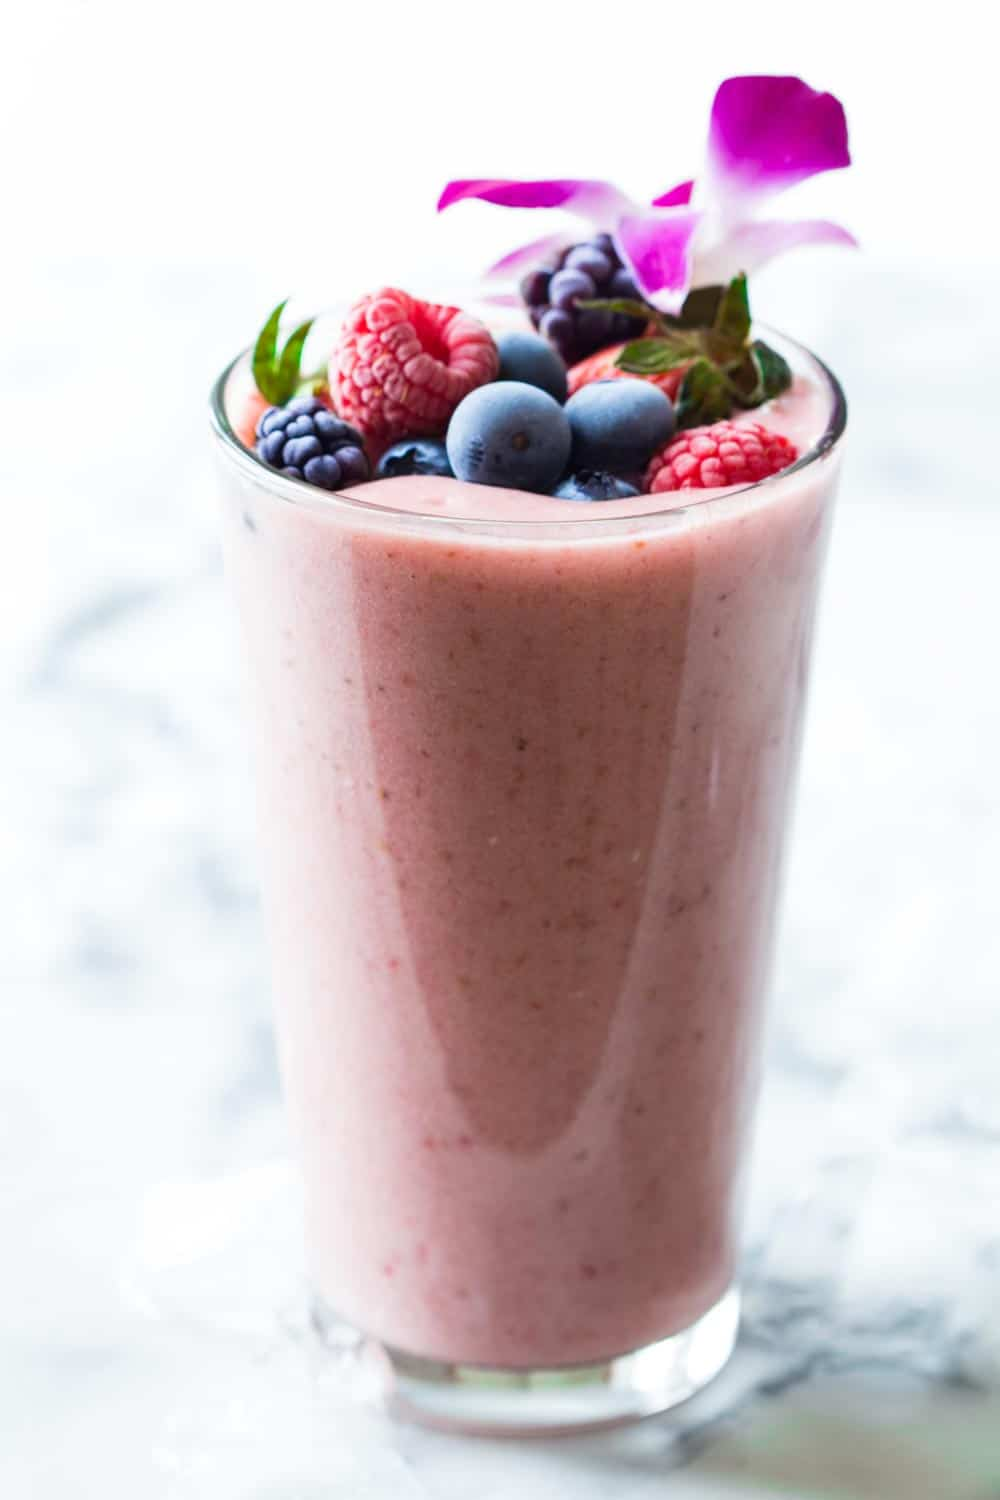 Glass of strawberry banana smoothie without yogurt filled to the rim, topped with raspberries, blueberries, blackberries and strawberries.